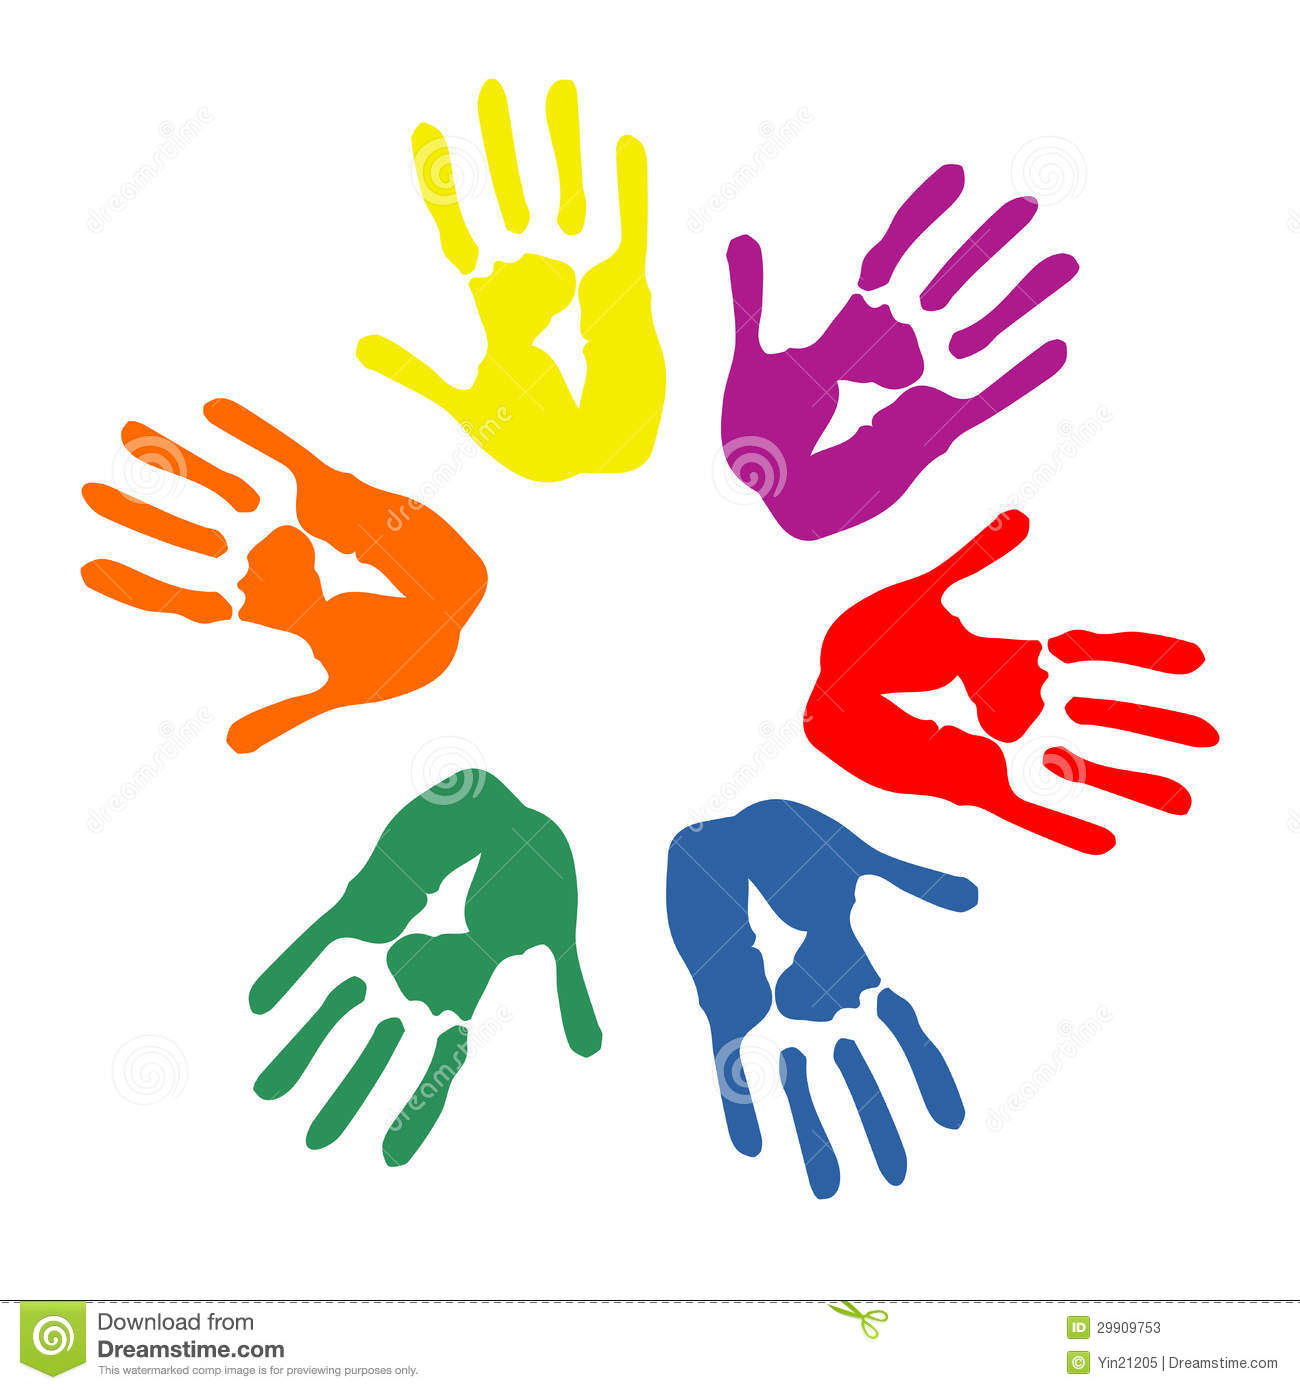 Hands in circle clipart jpg royalty free Colorful hand prints circle | Clipart Panda - Free Clipart Images jpg royalty free